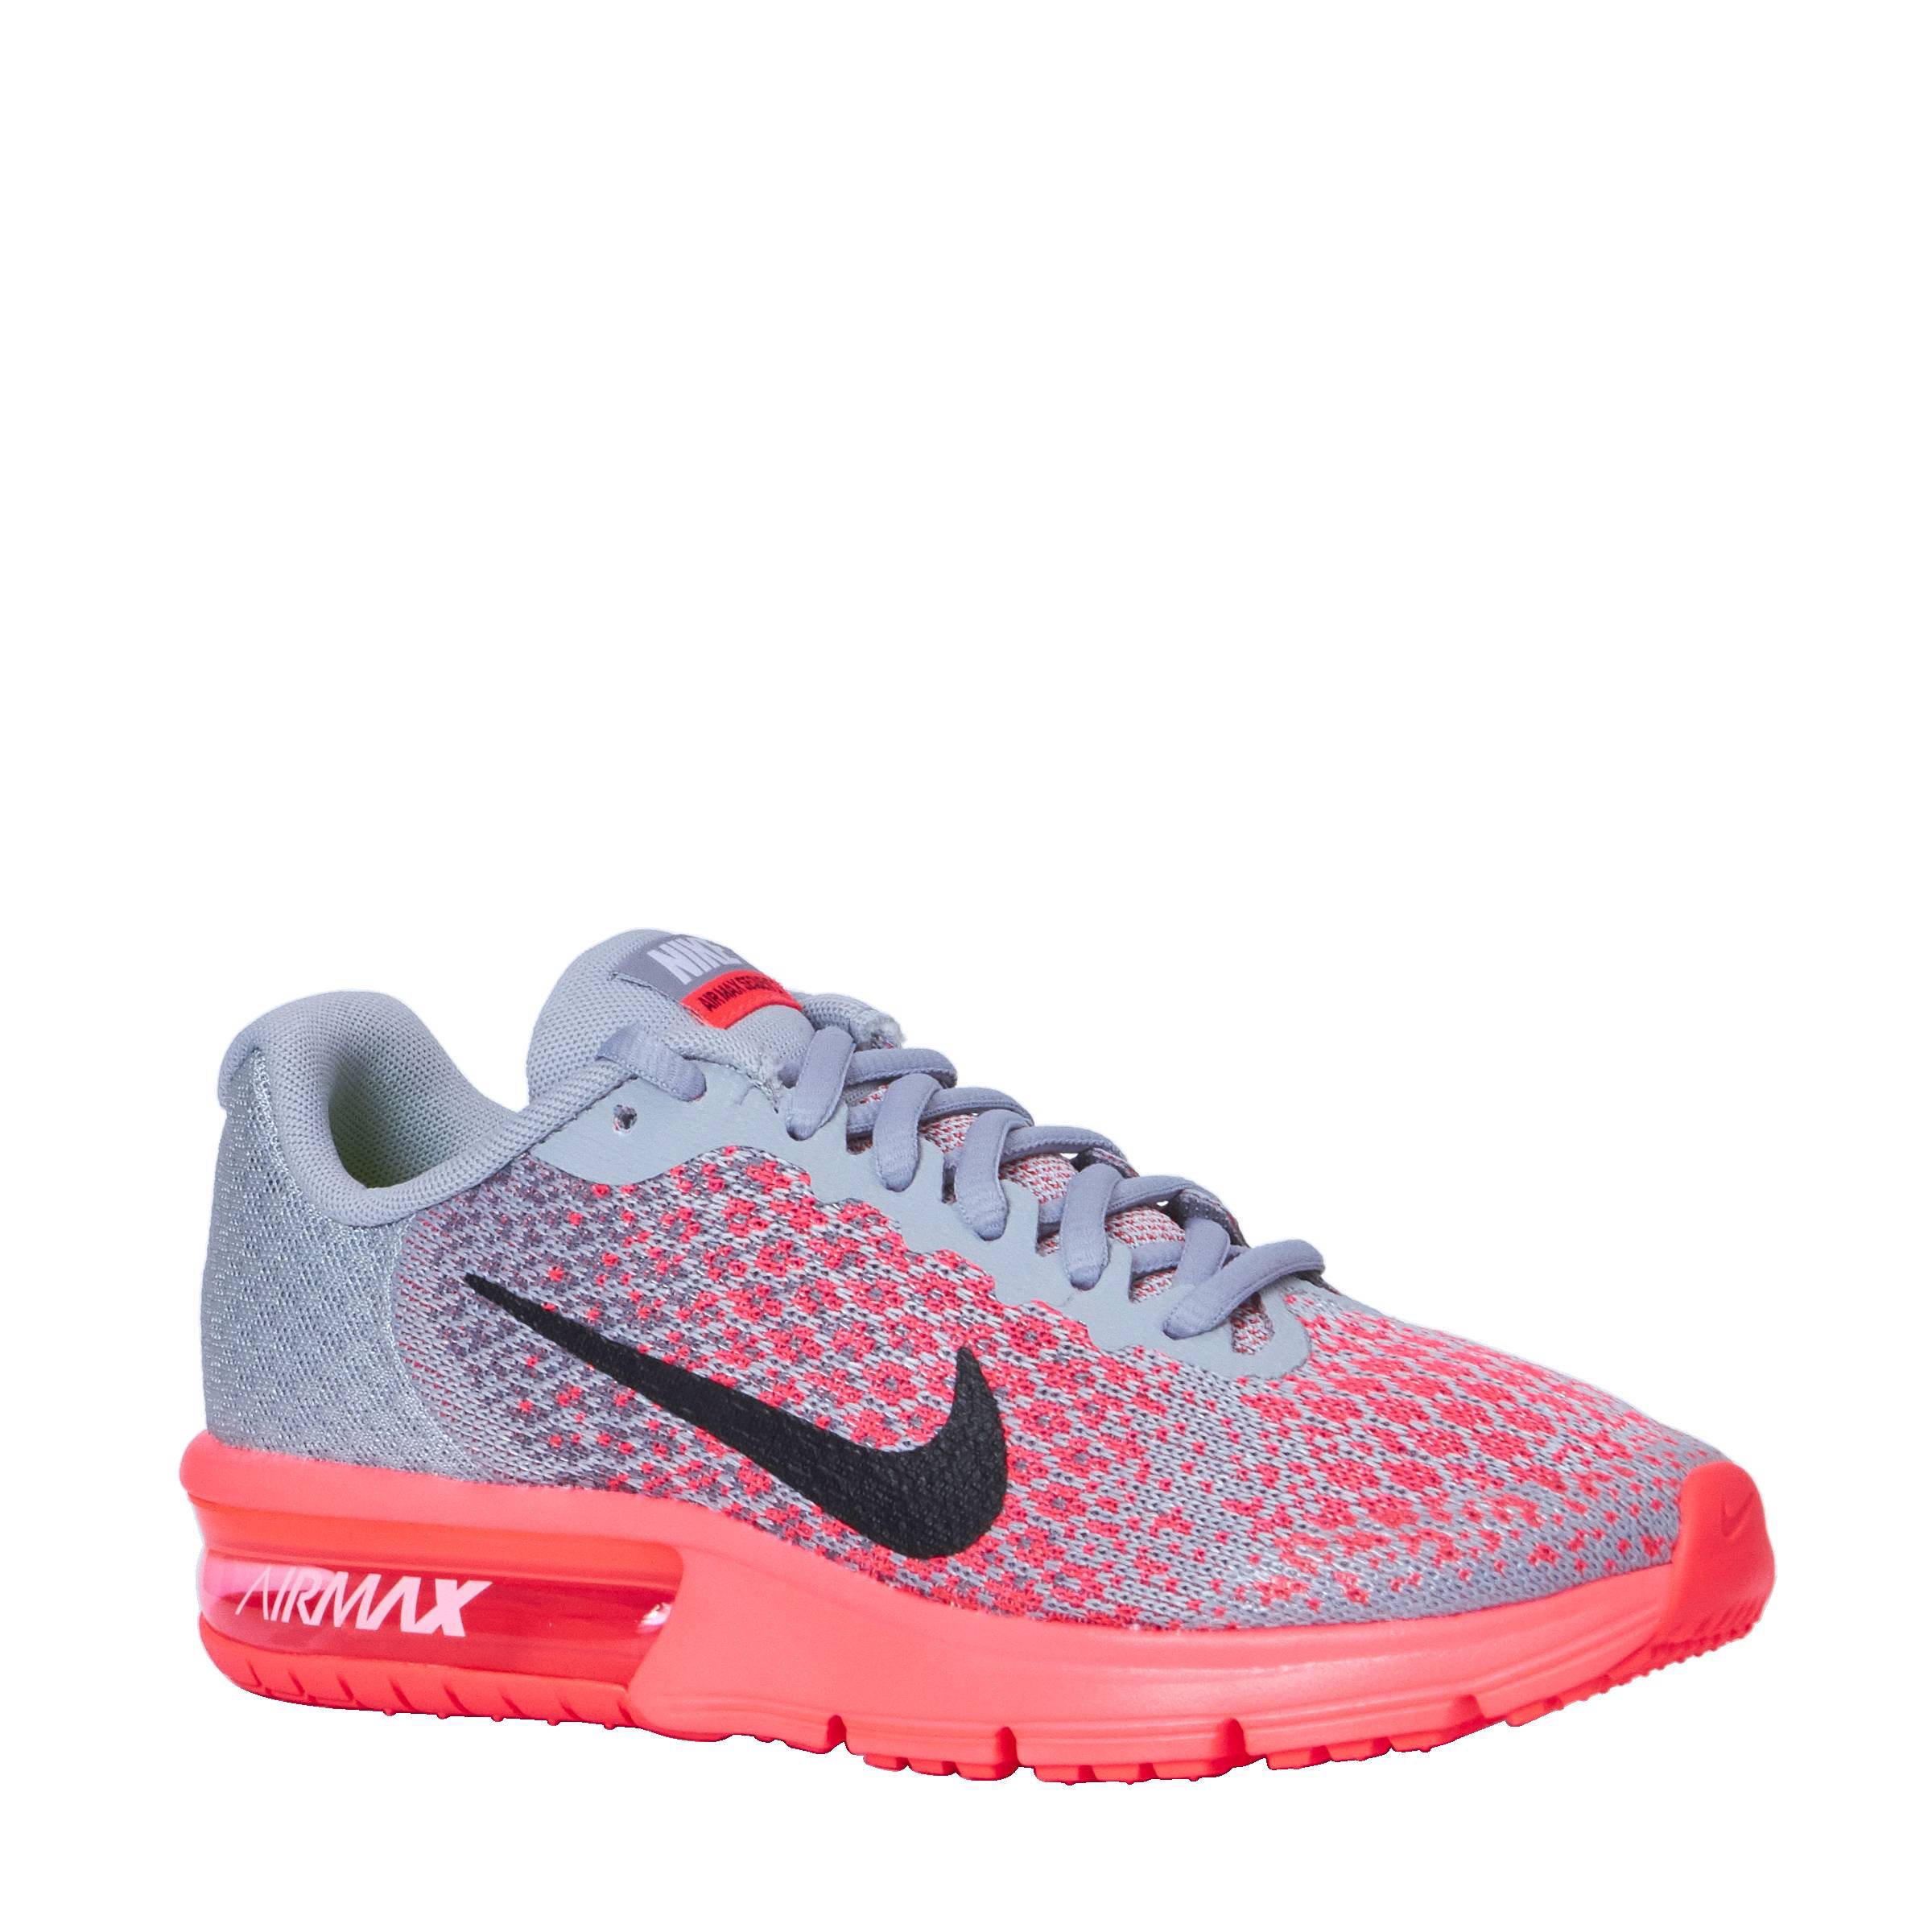 nike air max sequent dames roze